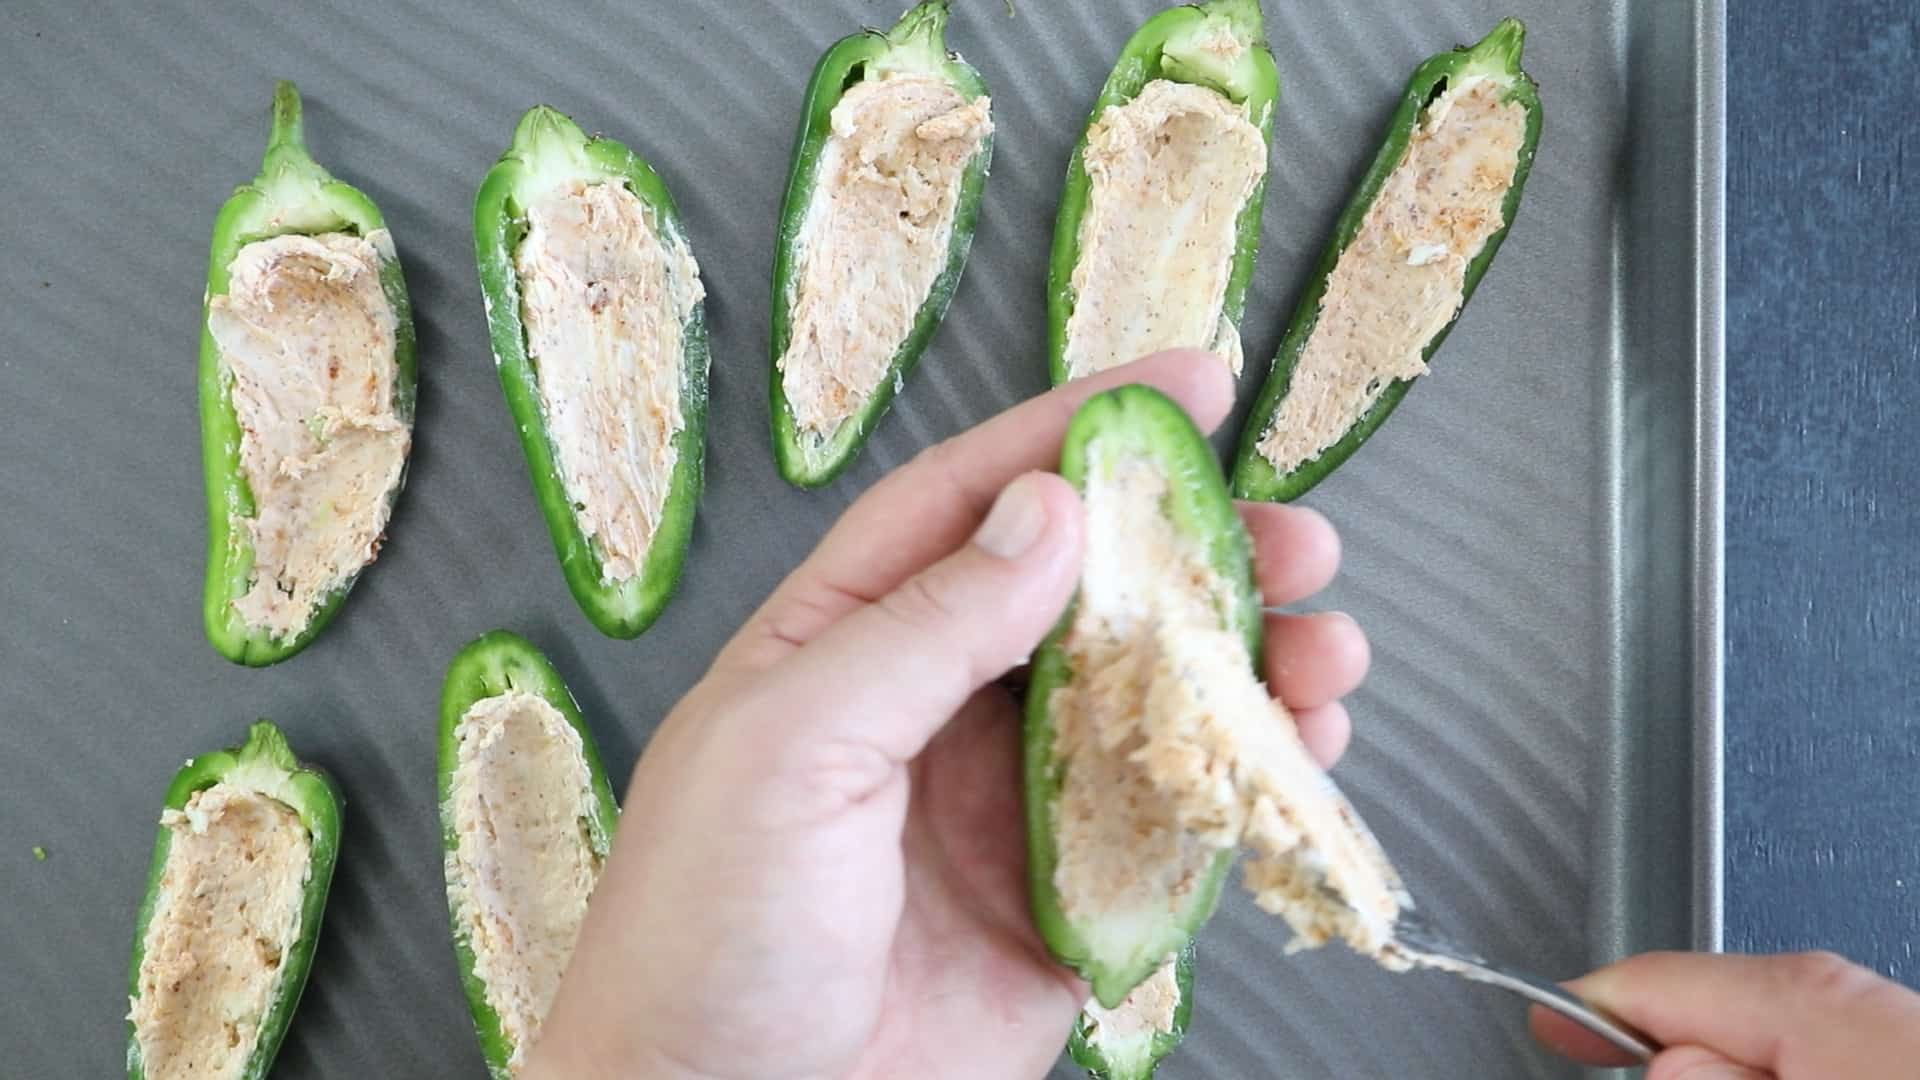 Stuffing the Jalapeno Peppers